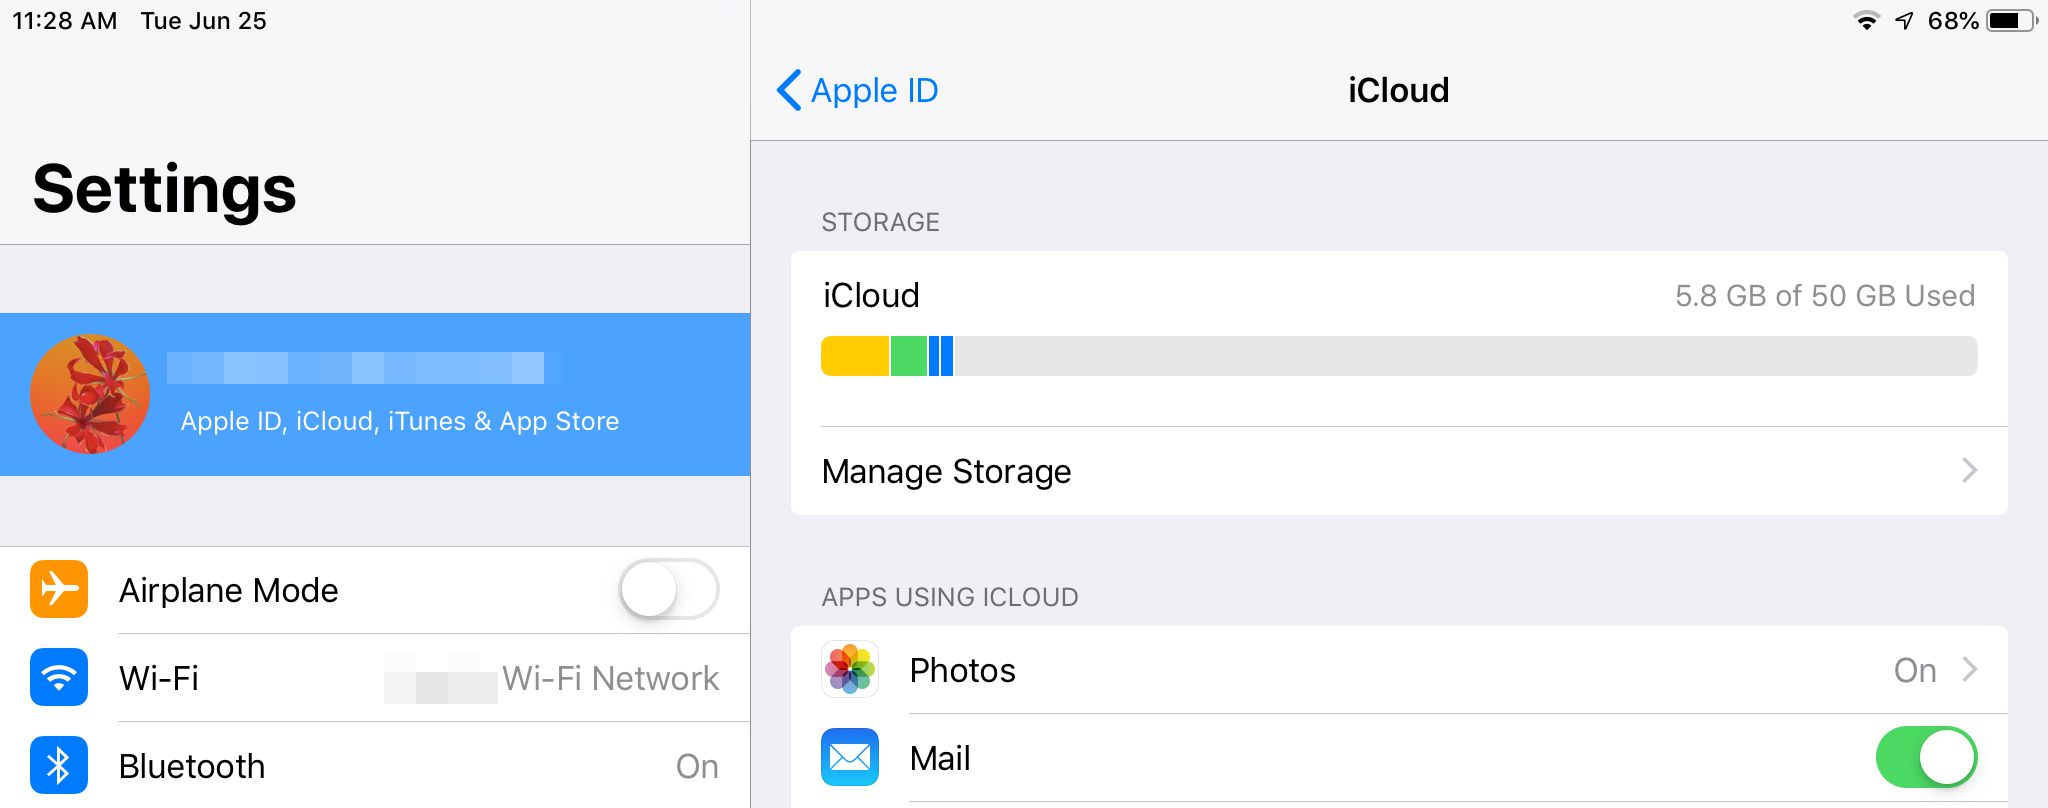 Sync Your iPhone and iPad in a Few Simple Steps